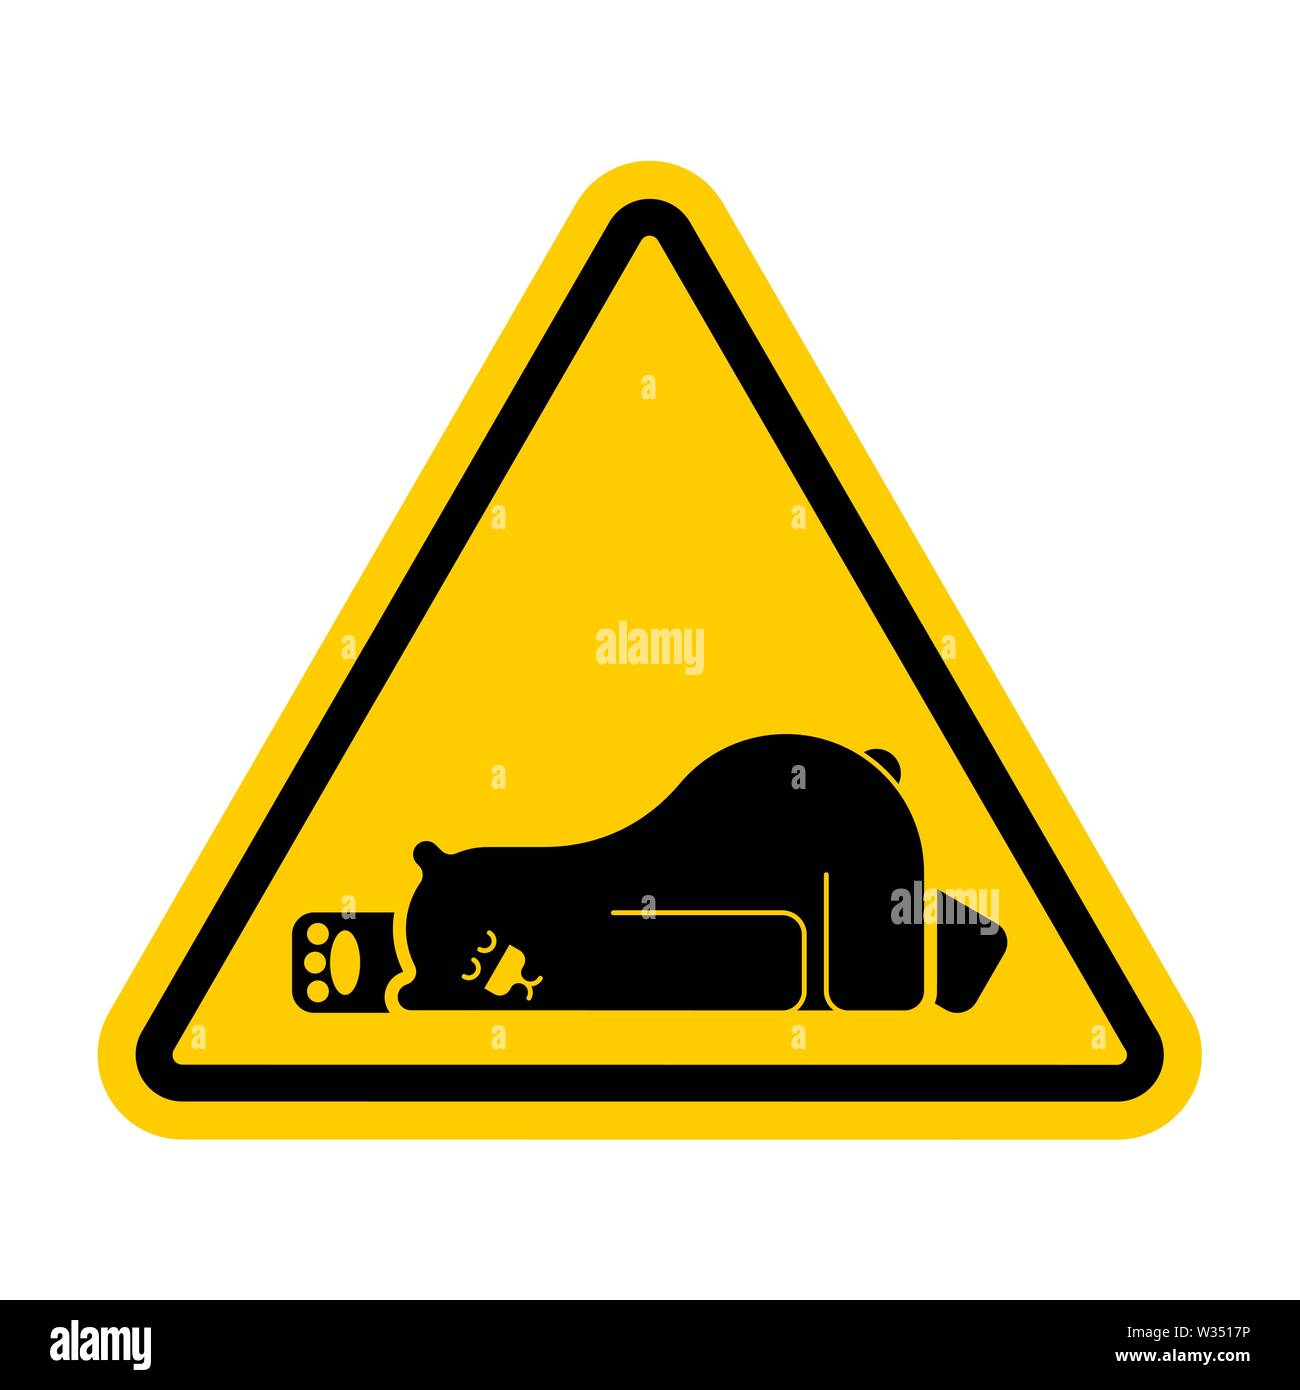 Attention Sleeping bear. Caution Grizzly is sleeping. Yellow triangle road sign - Stock Image